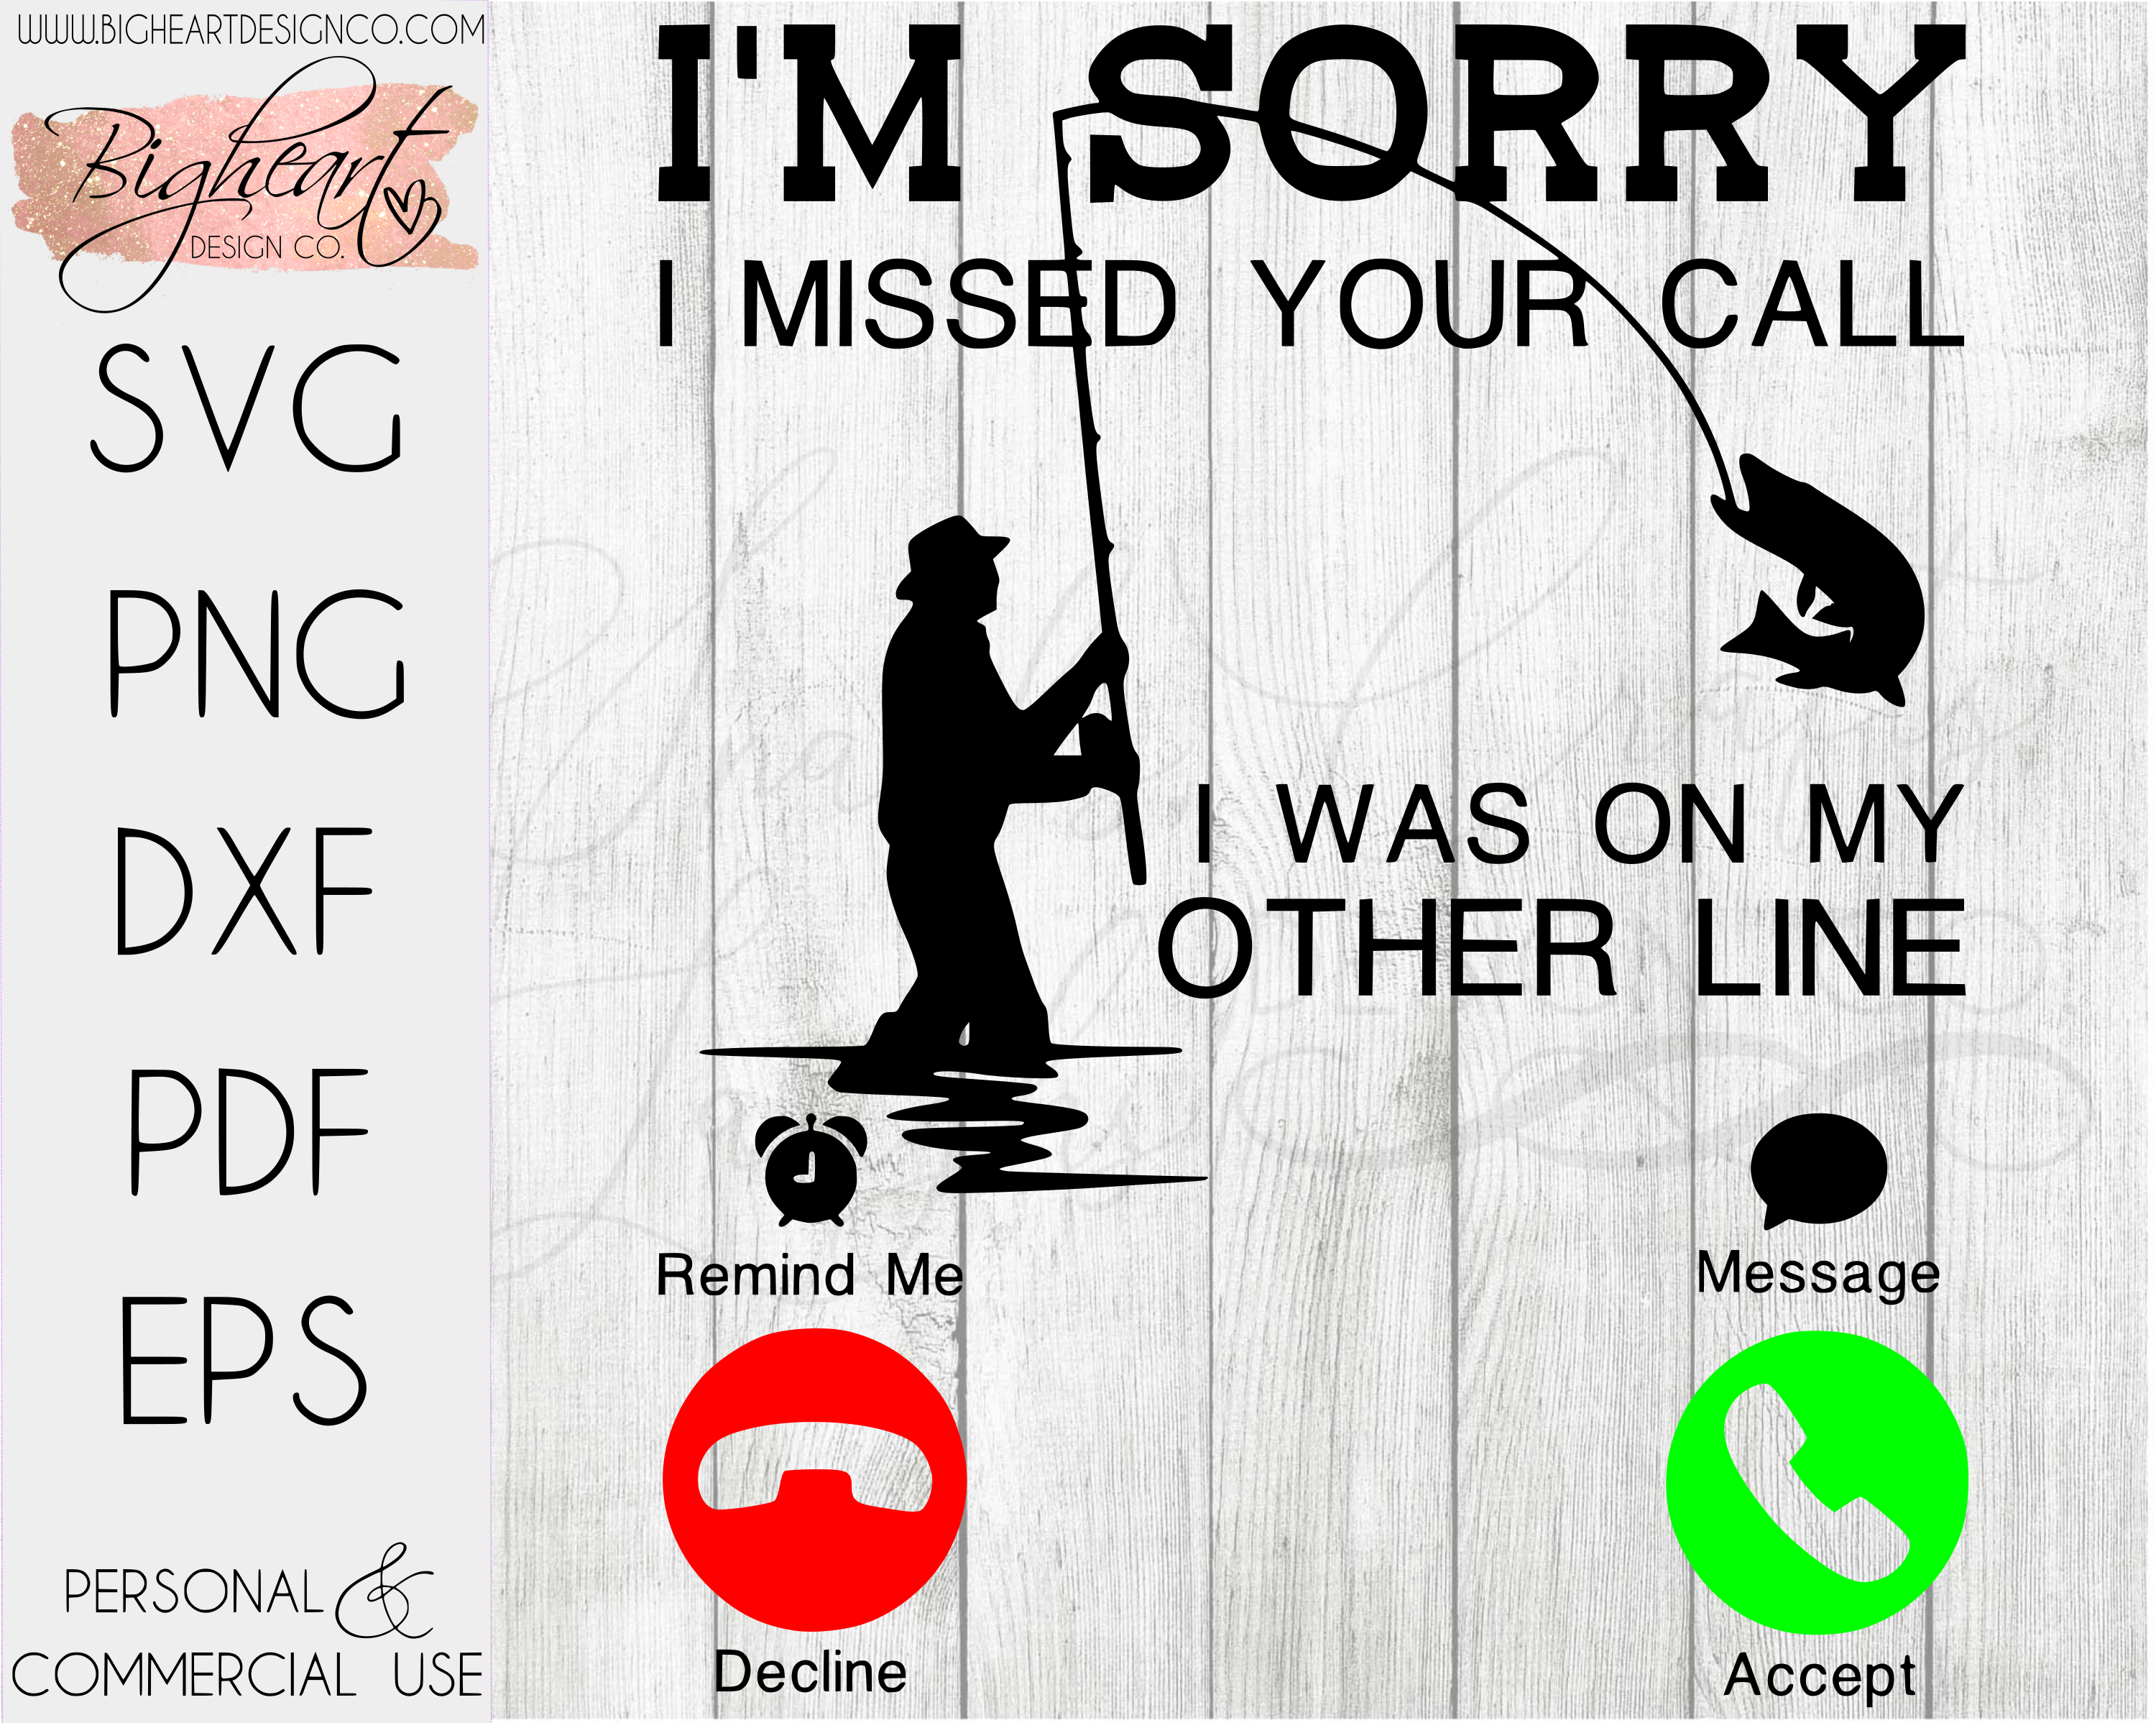 Download I M Sorry I Missed Your Call I Was On My Other Line Svg Gone Fishing Svg Musky Fishing Svg Bigheart Design Co